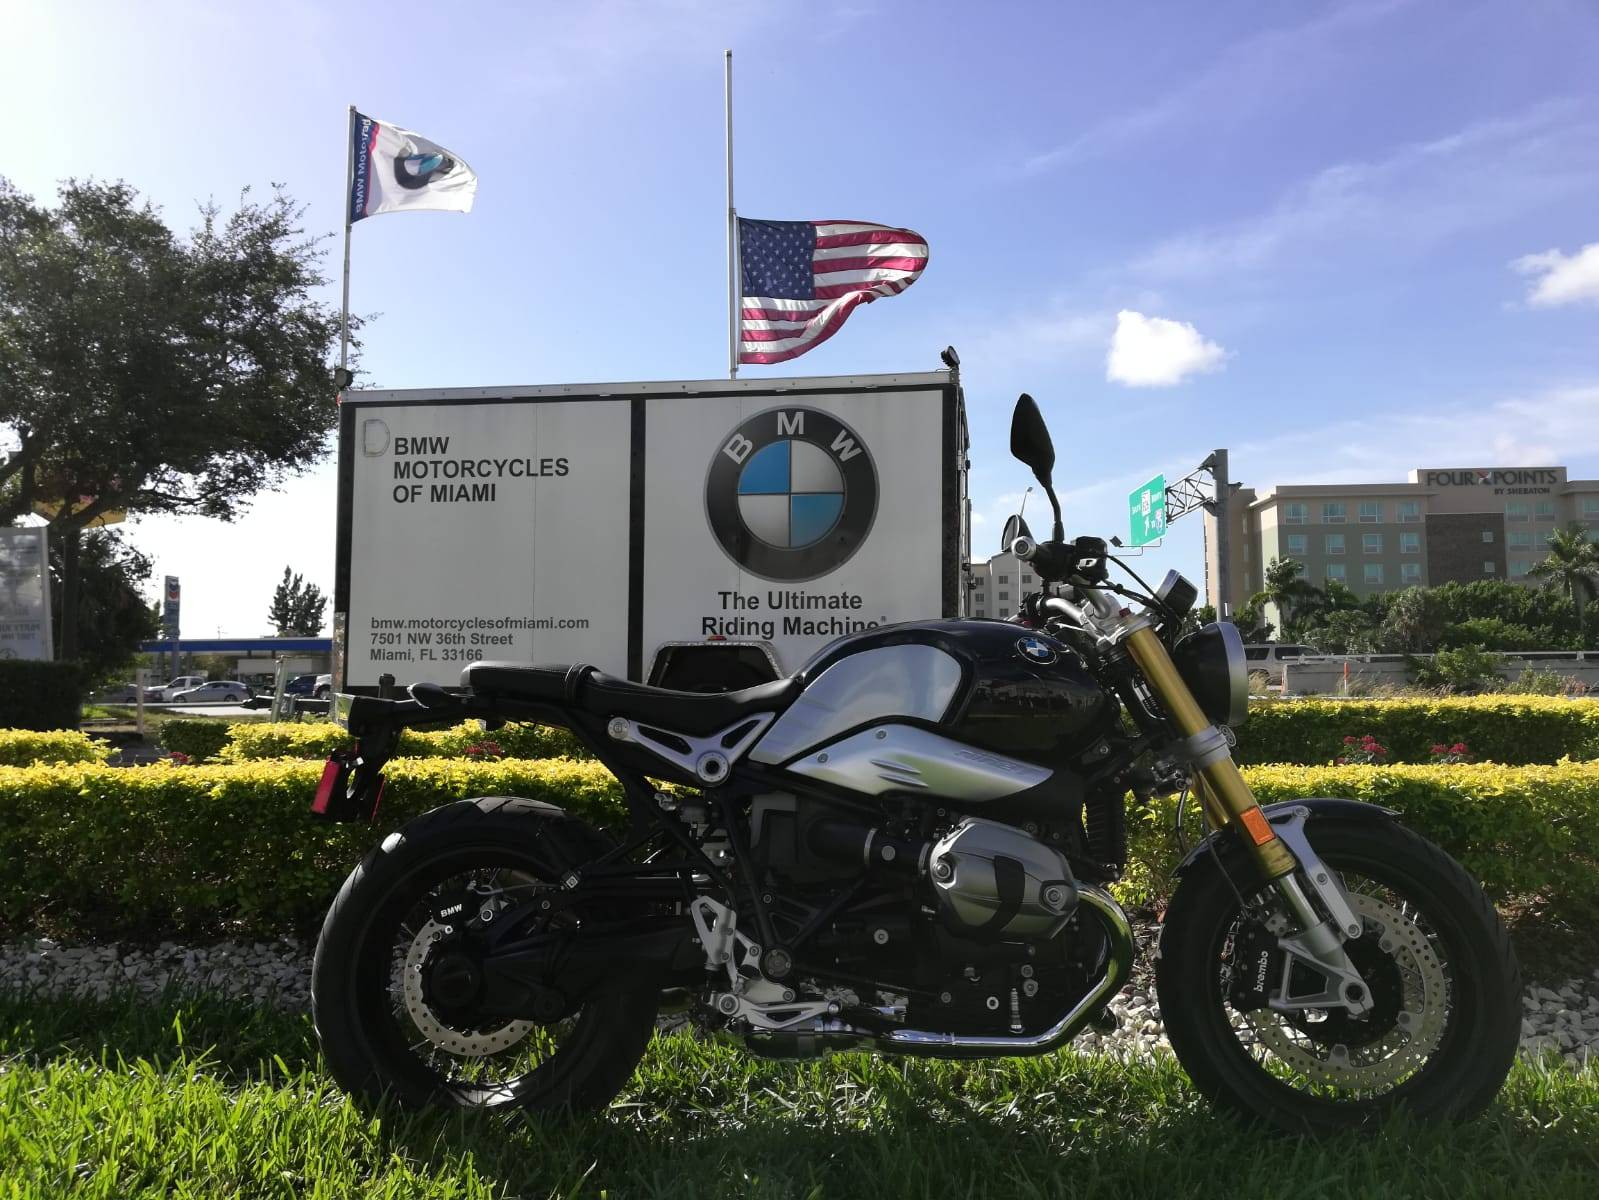 New 2019 BMW R NineT for sale, BMW for sale, BMW Motorcycle Café Racer, new BMW Caffe, Cafe Racer, BMW - Photo 11